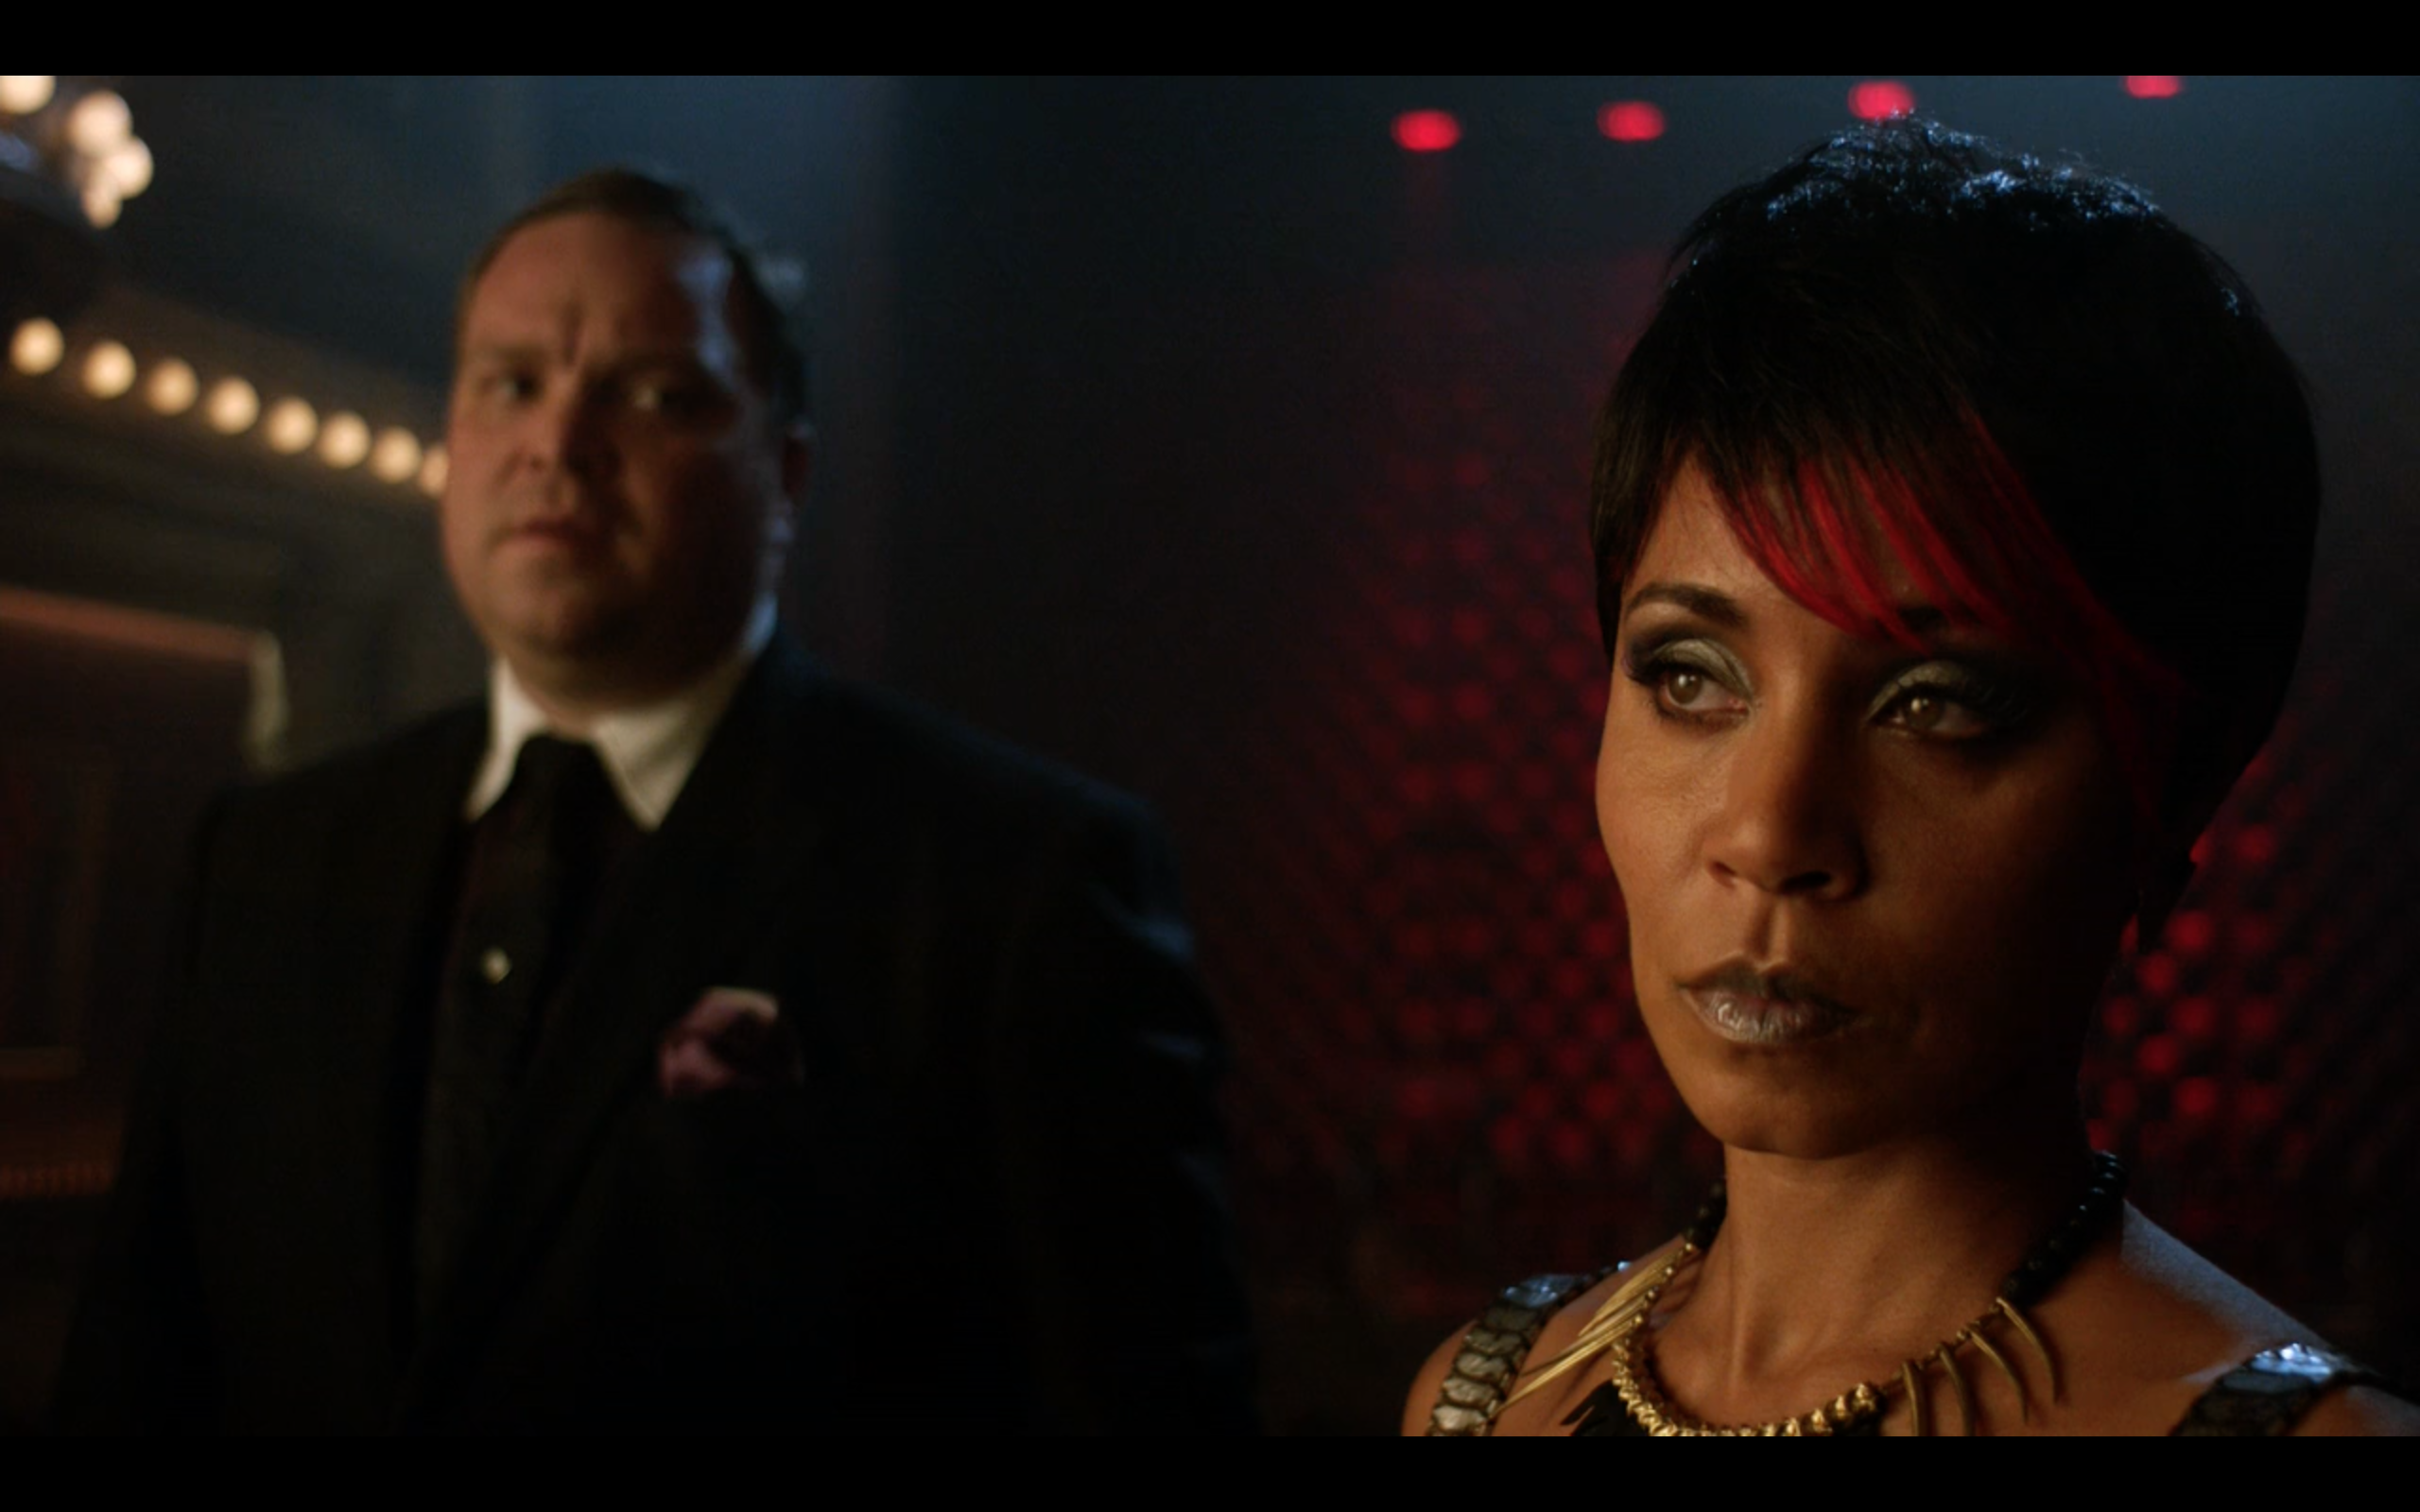 Jada Pinkett Smith as Fish Mooney and Drew Powell as Butch Gilzean in 'Gotham'